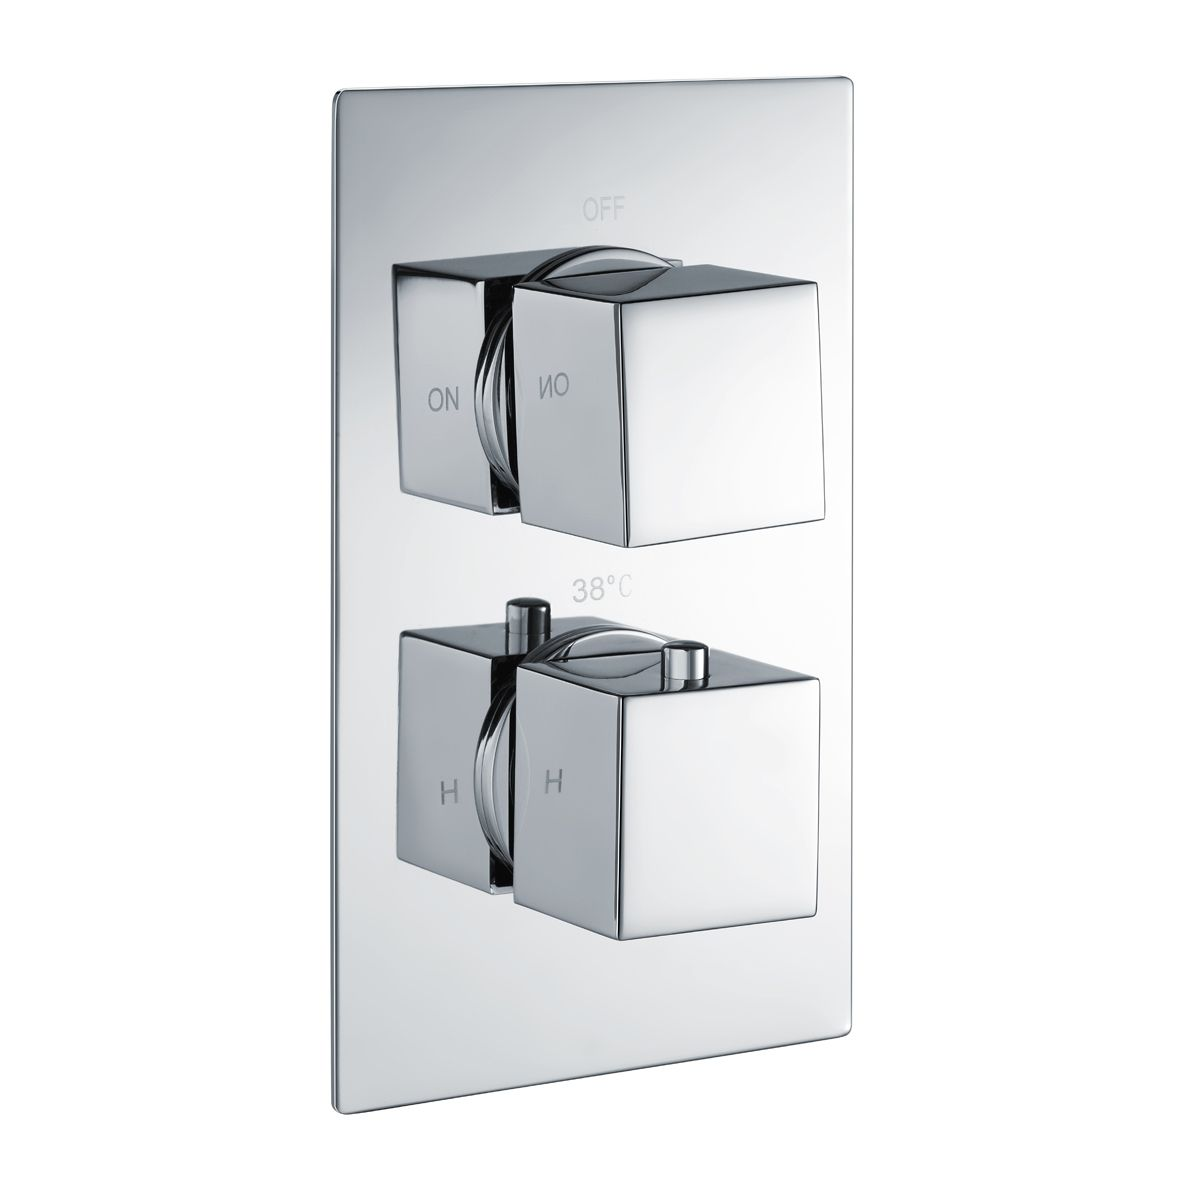 RAK Square Single Outlet 2 Handle Thermostatic Shower Valve